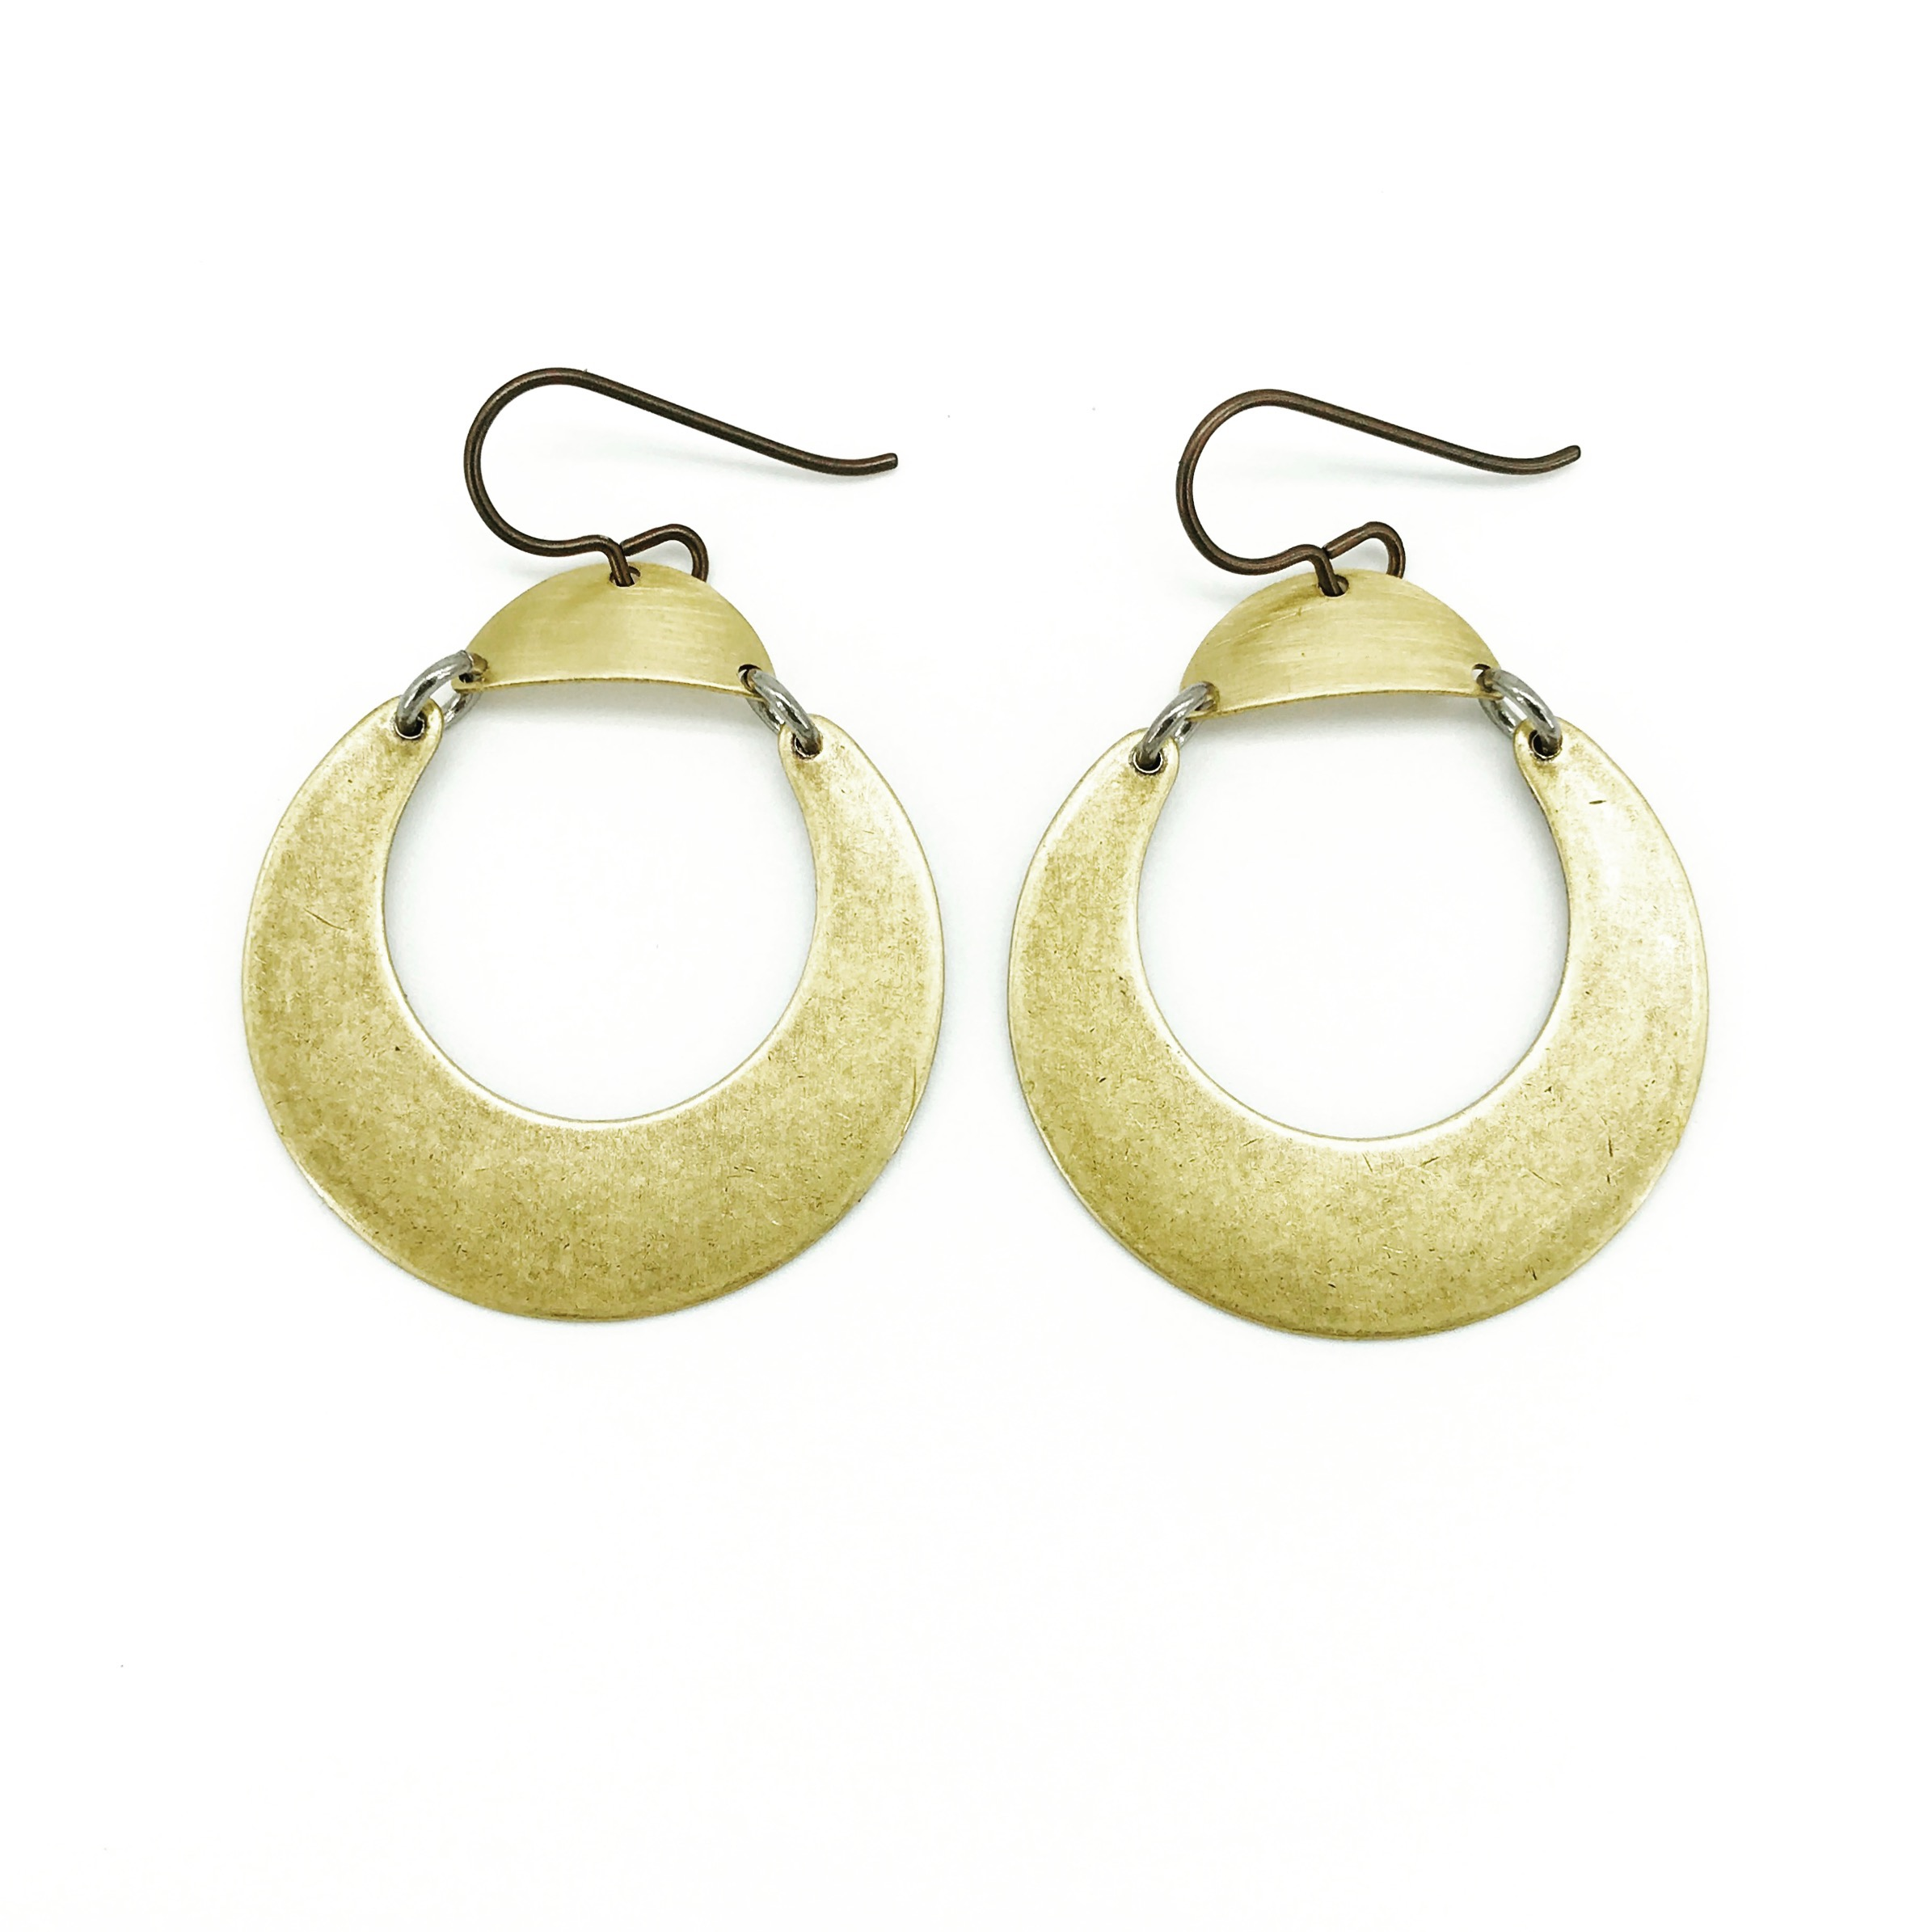 Lunula earrings, brass crescents with niobium earwires, $50